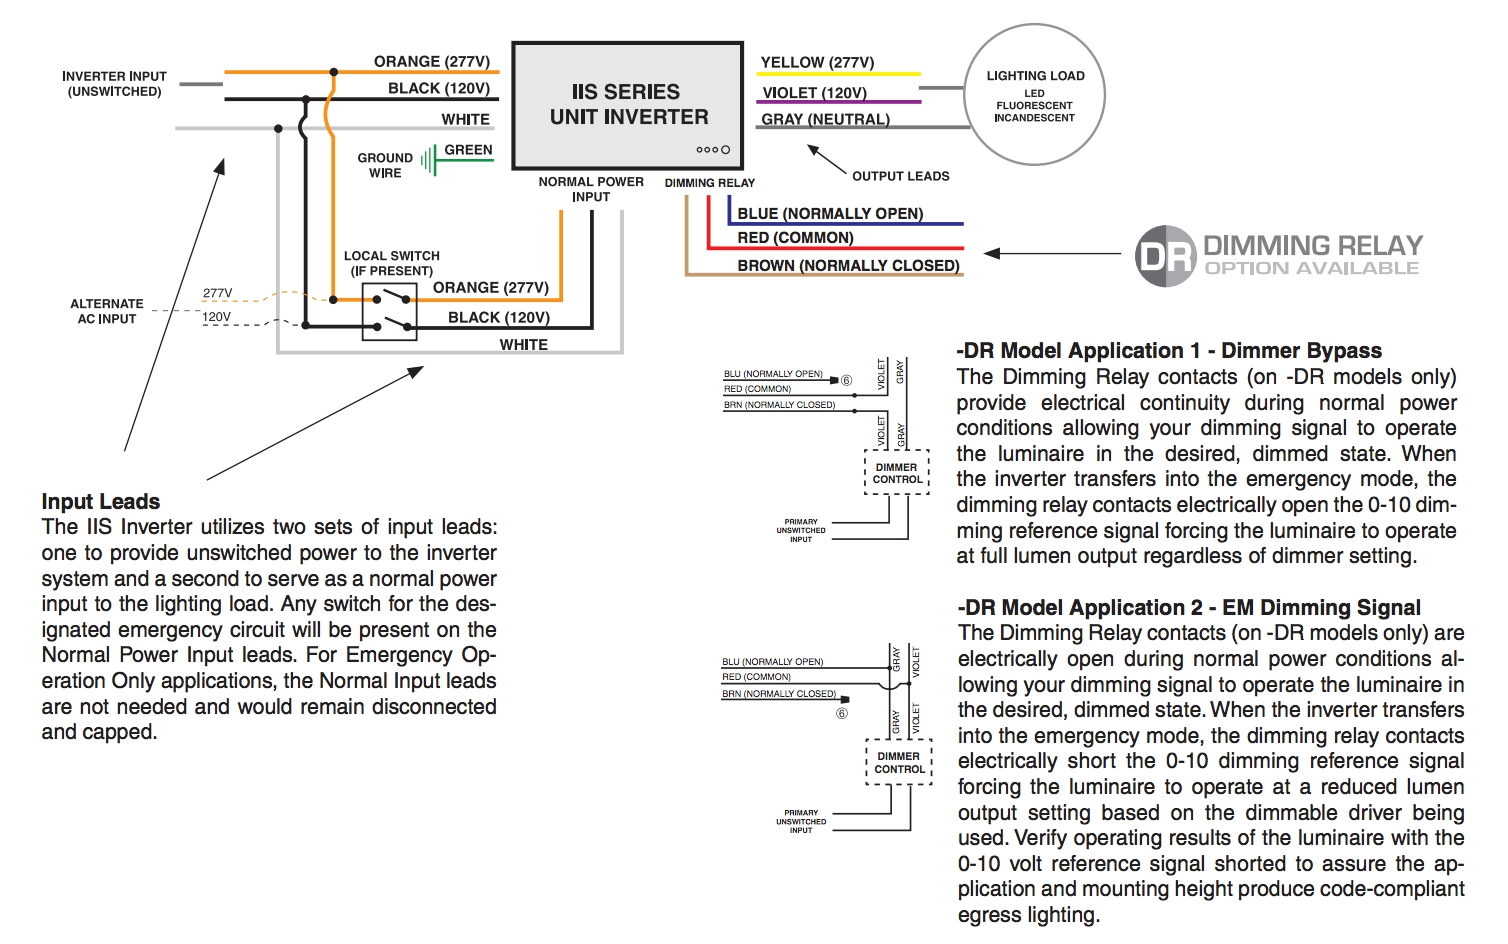 Iota Emergency Ballast Wiring Diagram - Iota I 24 Emergency Ballast Wiring Diagram 7m